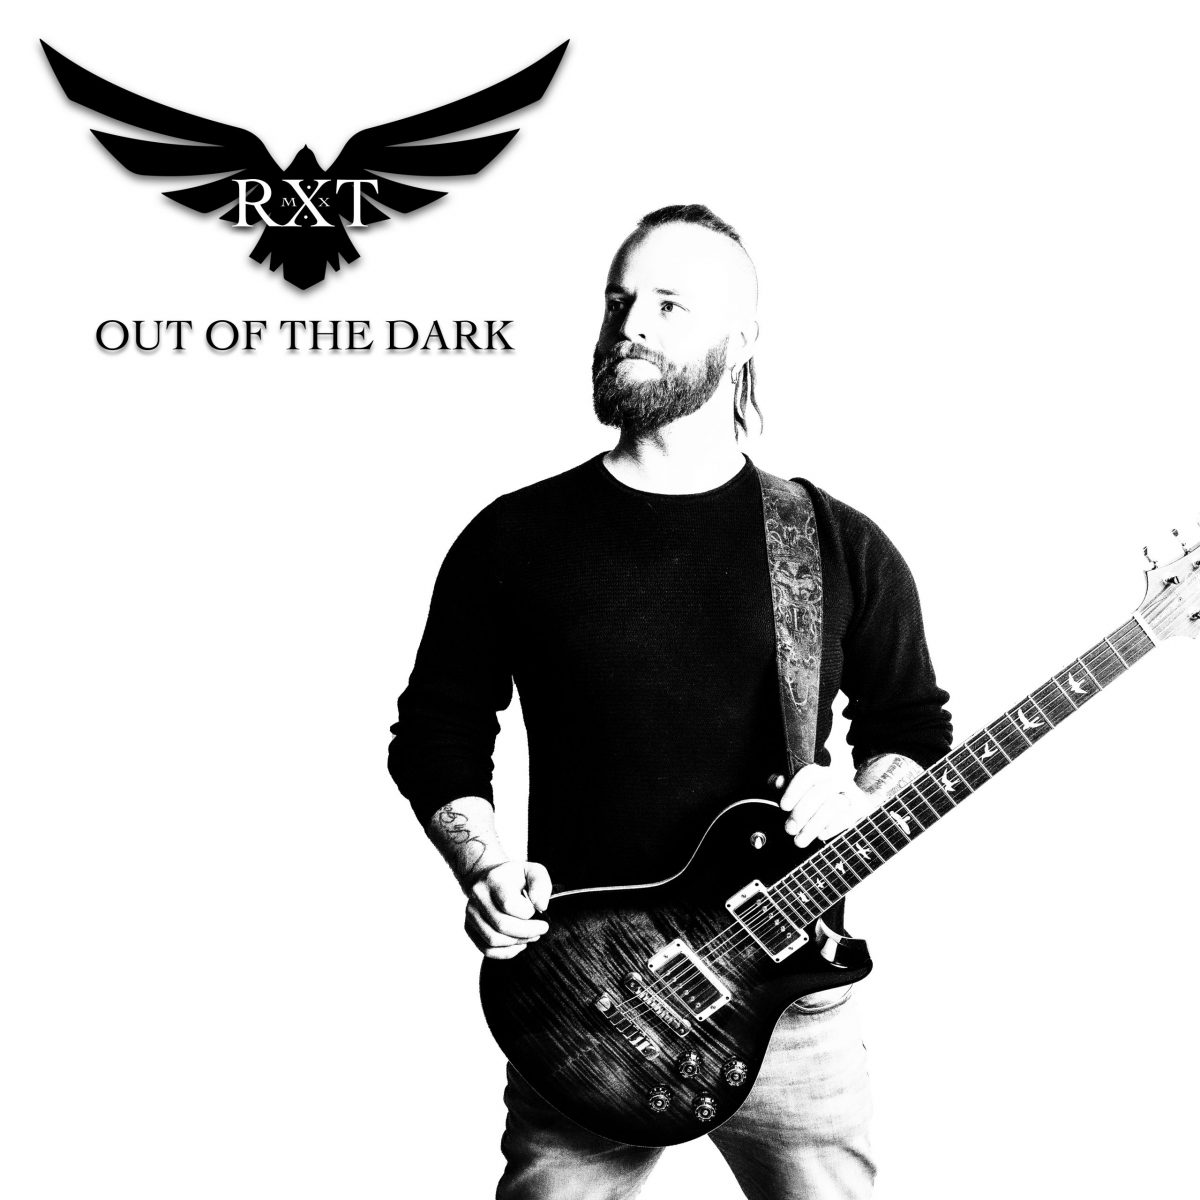 max-roxton-out-of-the-dark-video-premiere